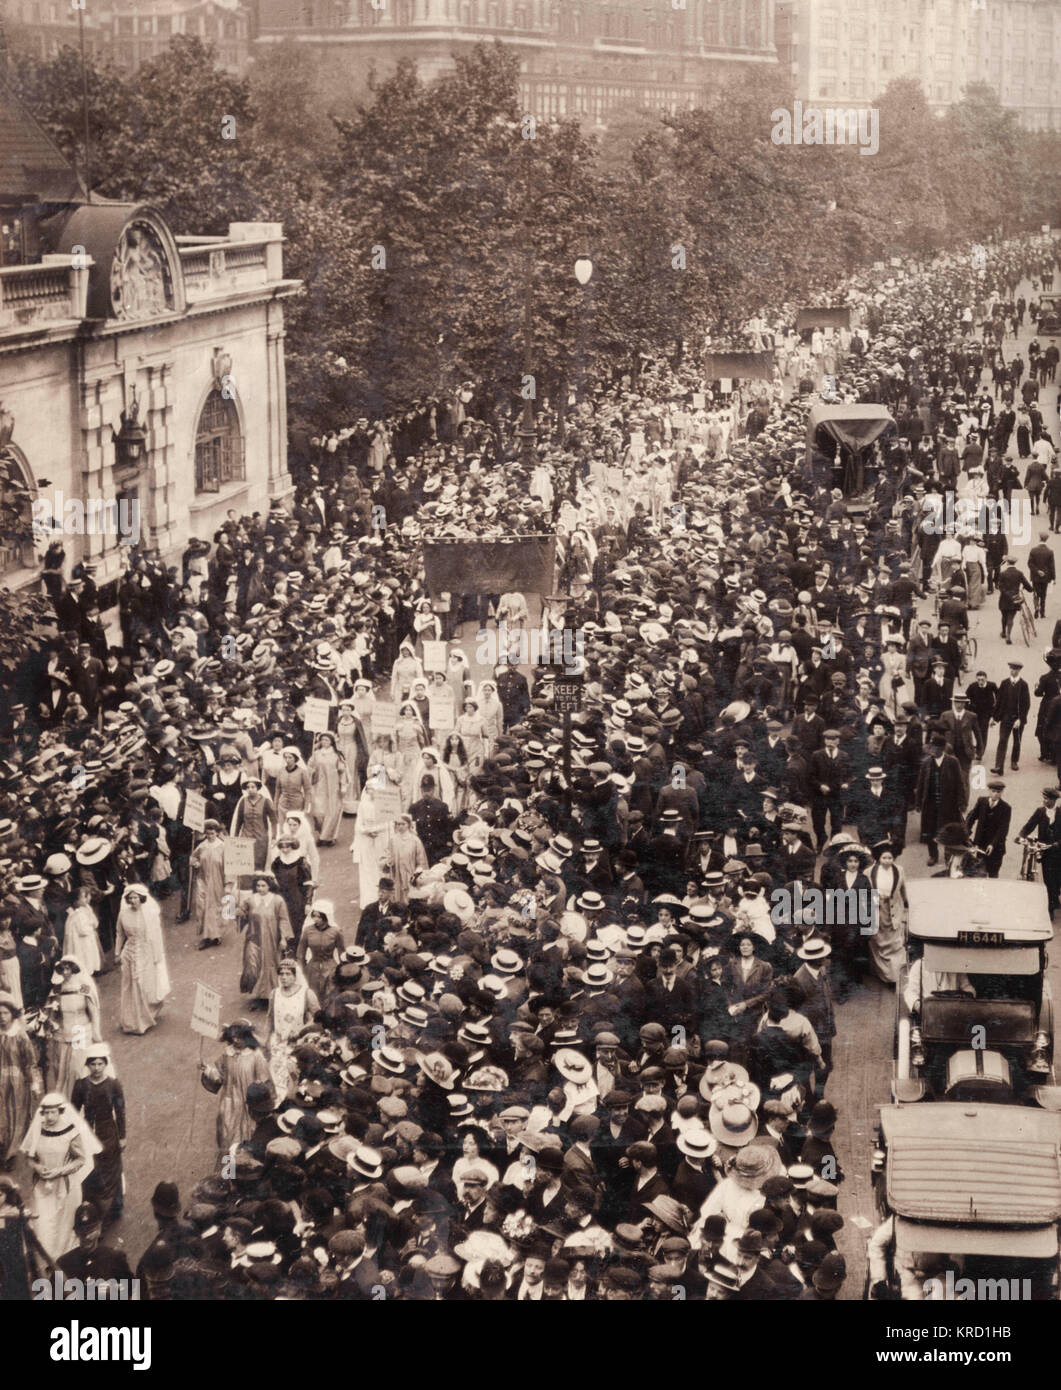 A large suffragette procession passing along the Embankment in Central London.  The Coronation of George V in 1911 - Stock Image